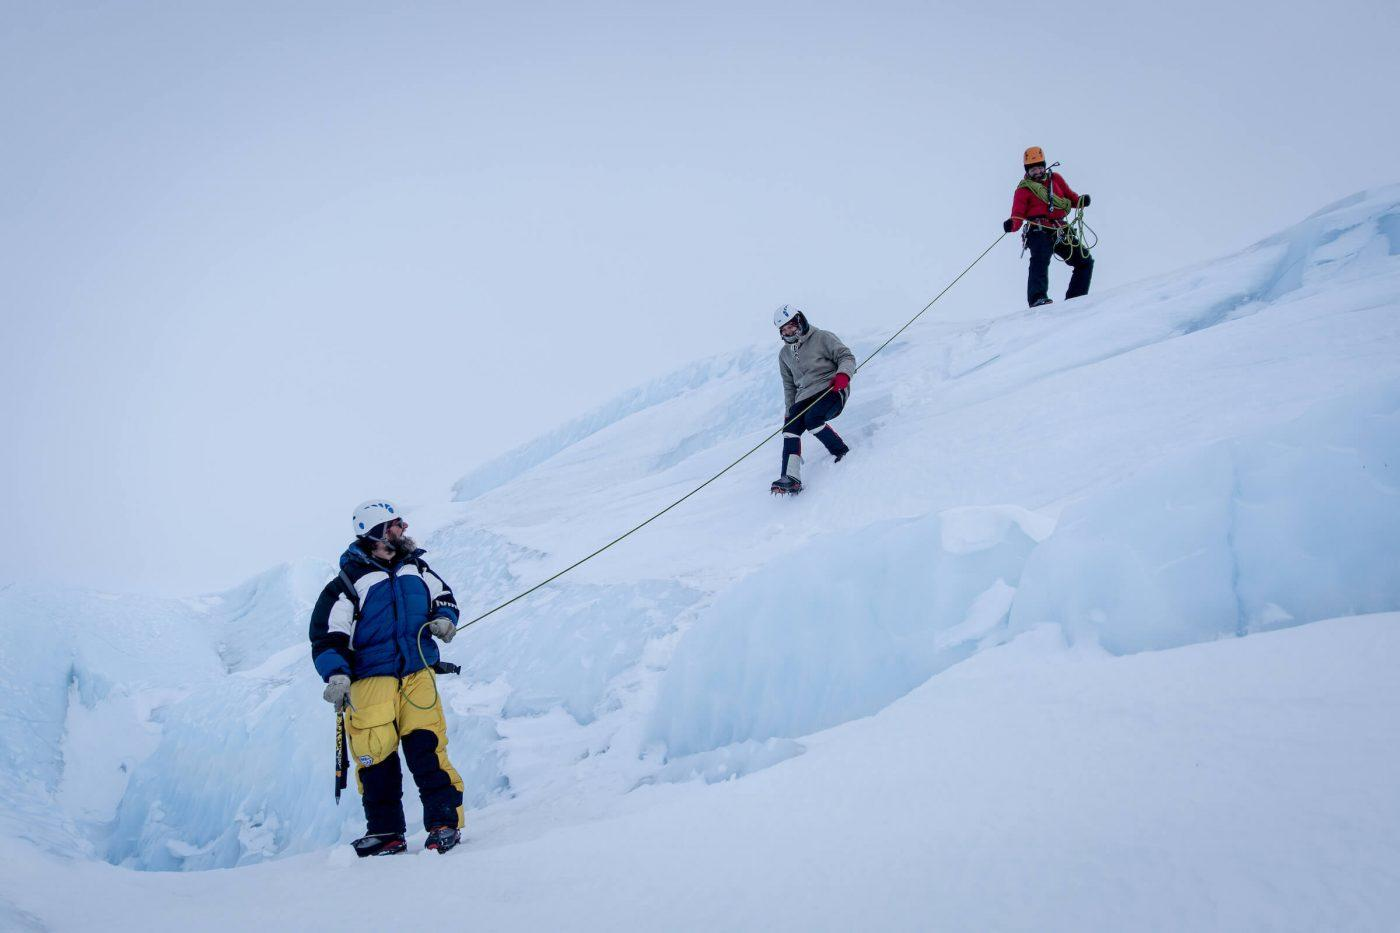 Hikers on the Greenland ice sheet using ropes to descned an ice wall near Ilulissat. By Mads Pihl